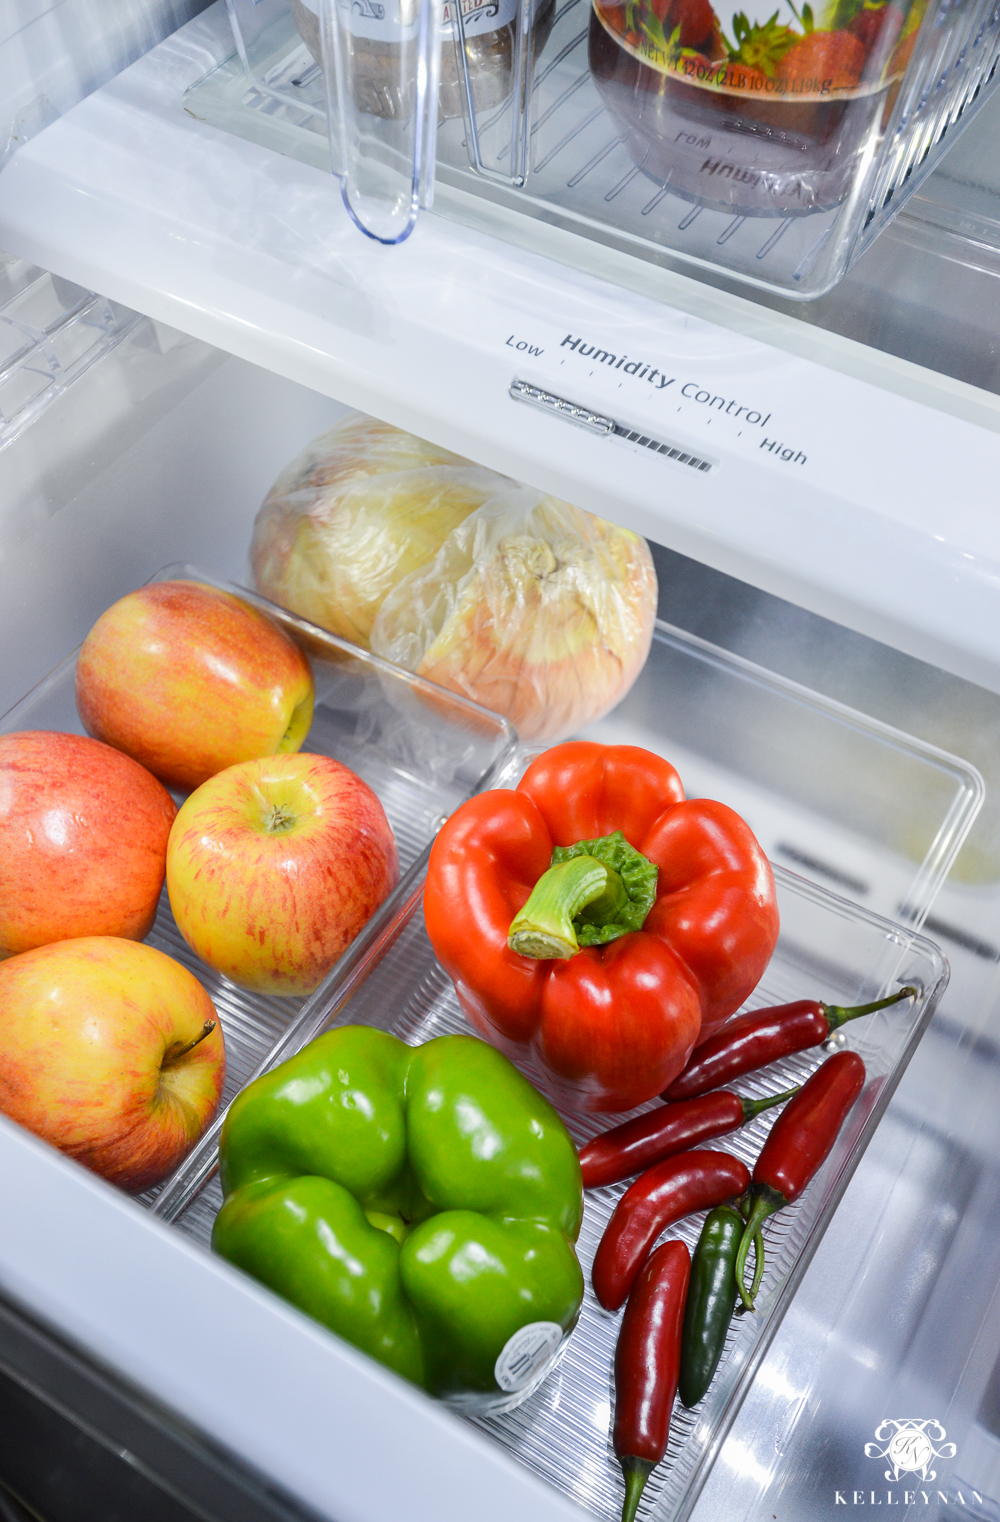 Refrigerator Organization and Best Ways to Organize the Fridge- produce drawers